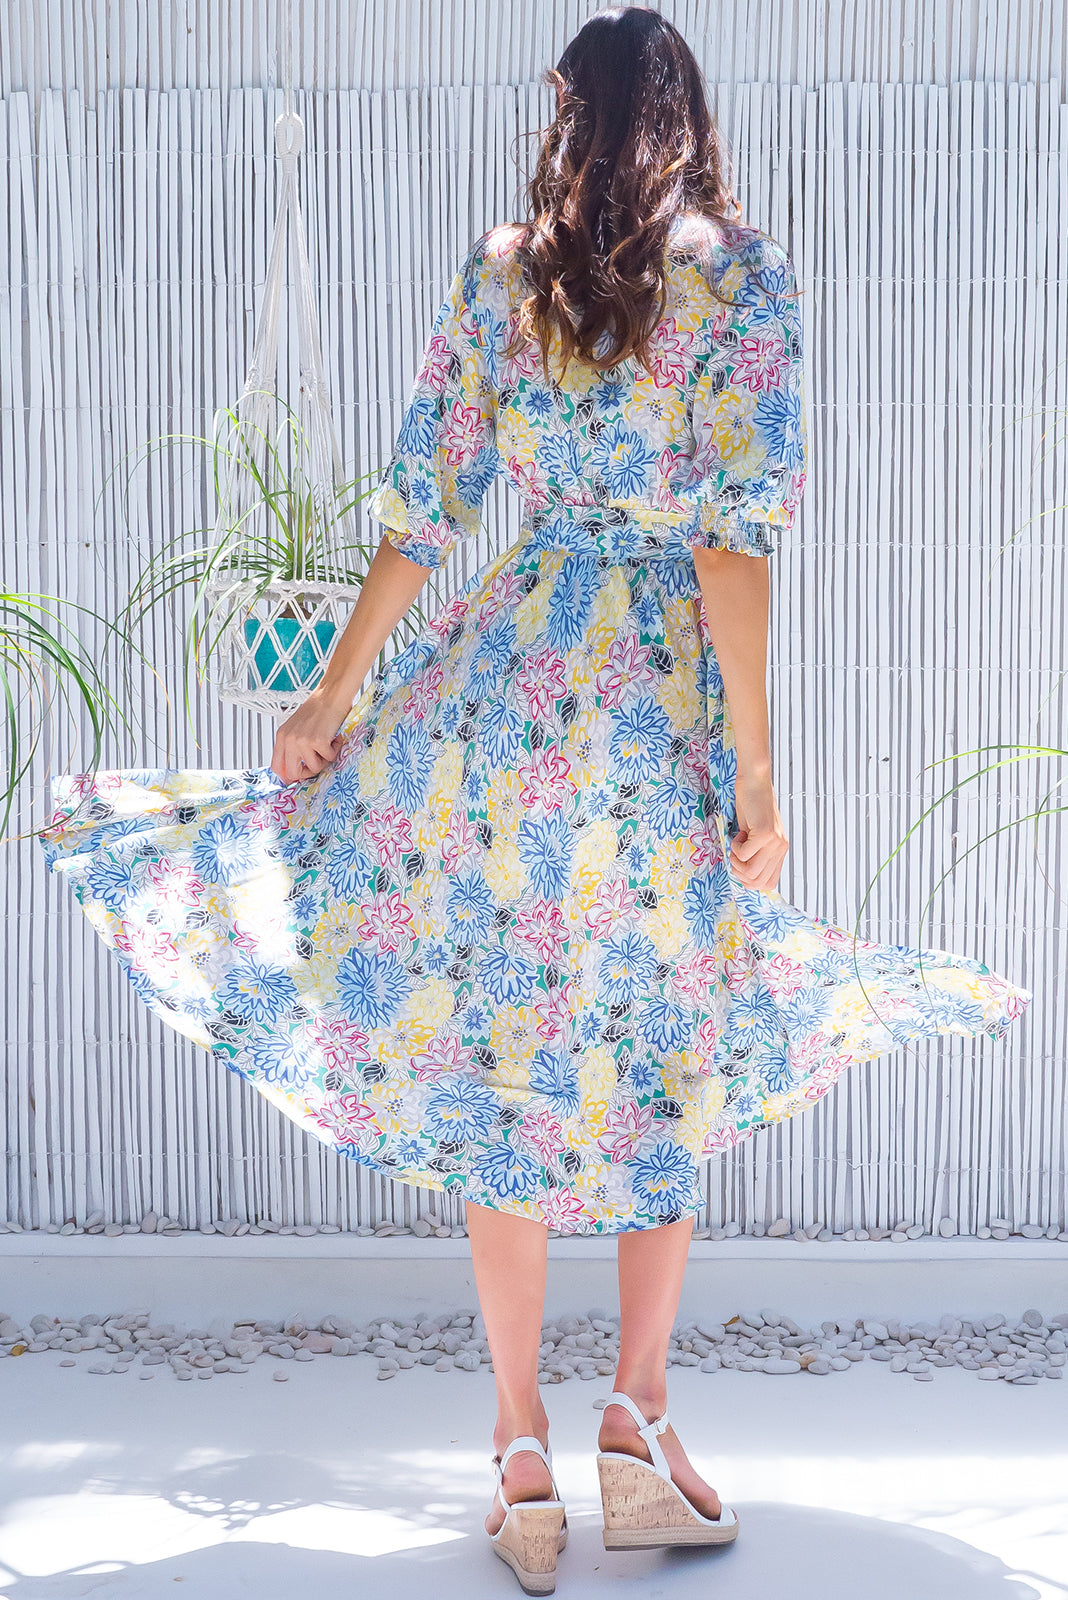 The Primrose Garden Sketch Dress is a vintage inspired frock featuring V neckline, functional buttons from bust to waist, 3/4 sleeve with shirring cuffs, side pockets and 100% rayon in white base with colourful floral outlines.